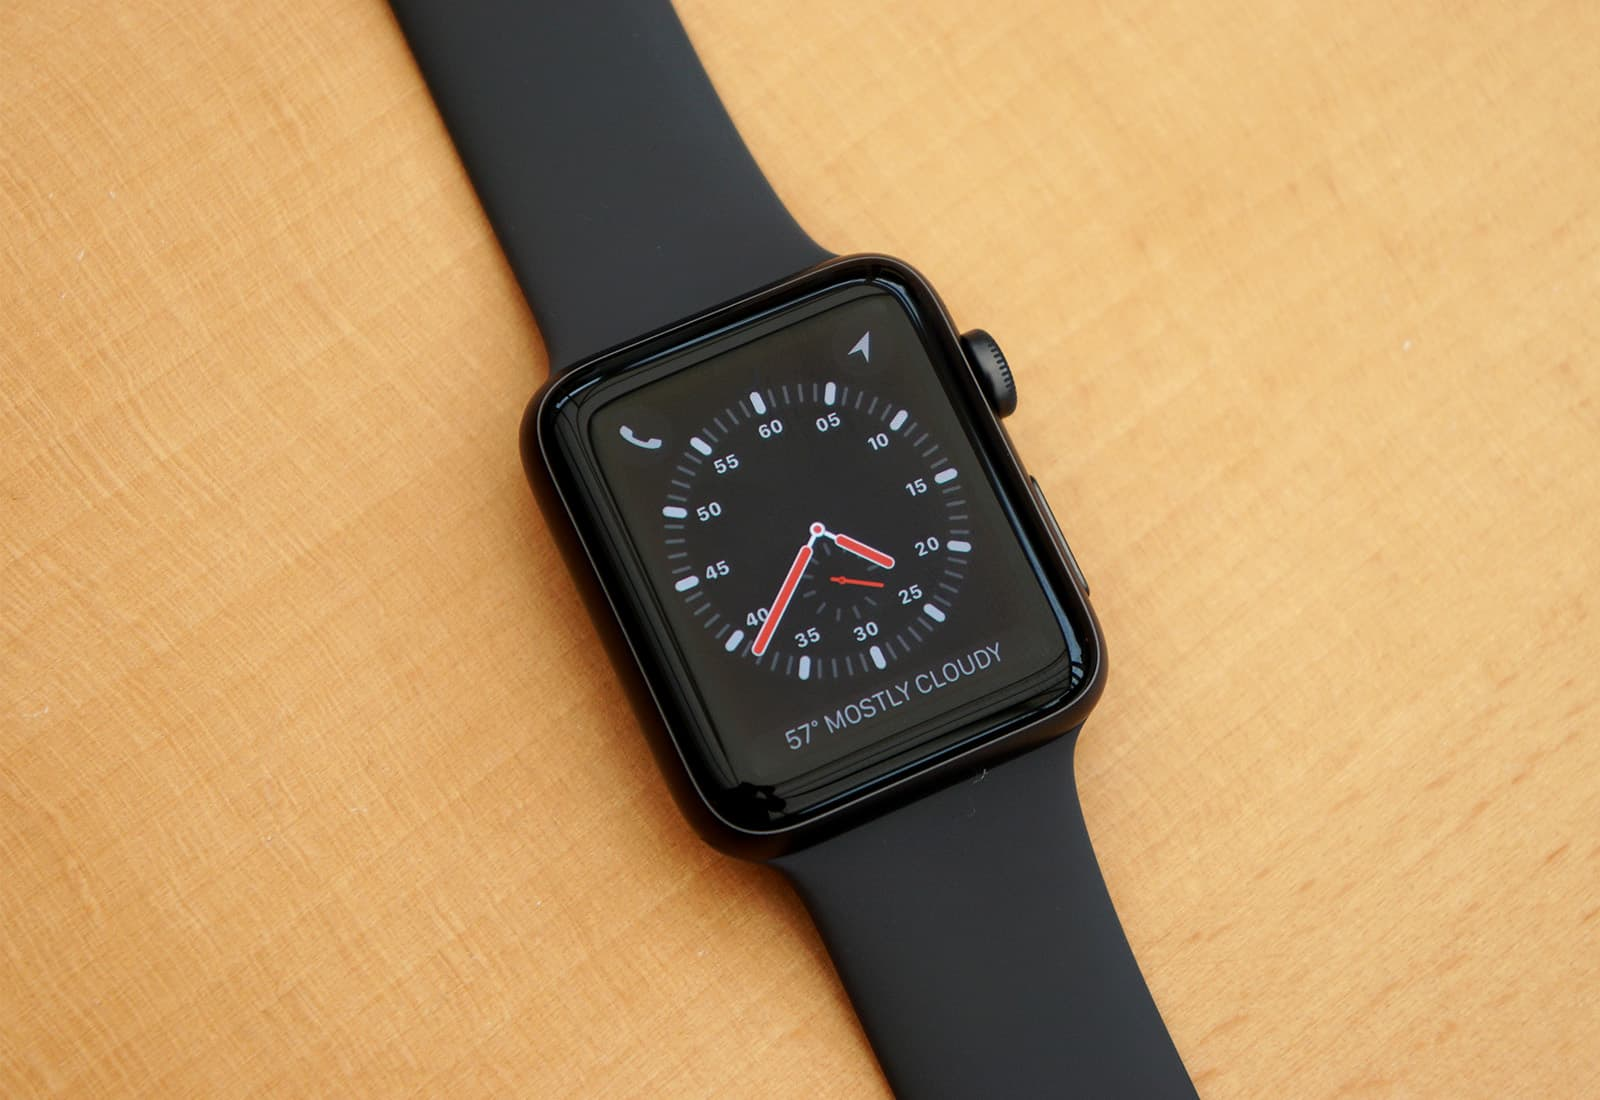 Awesome Apple Watch Tricks To Get The Most Out Of Your